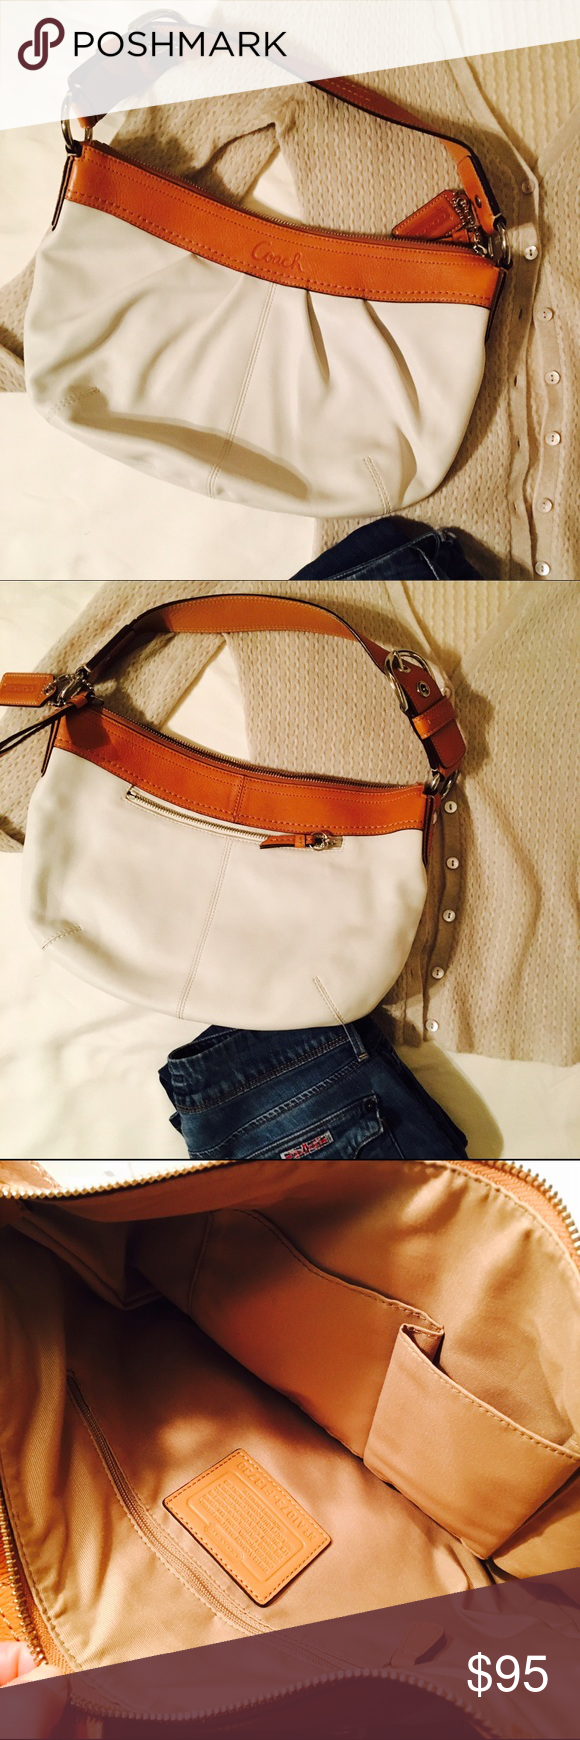 🍒White and Tan Coach Bag NWOT Never used. Perfect condition. Authentic as is everything I own & post. Coach Bags Shoulder Bags